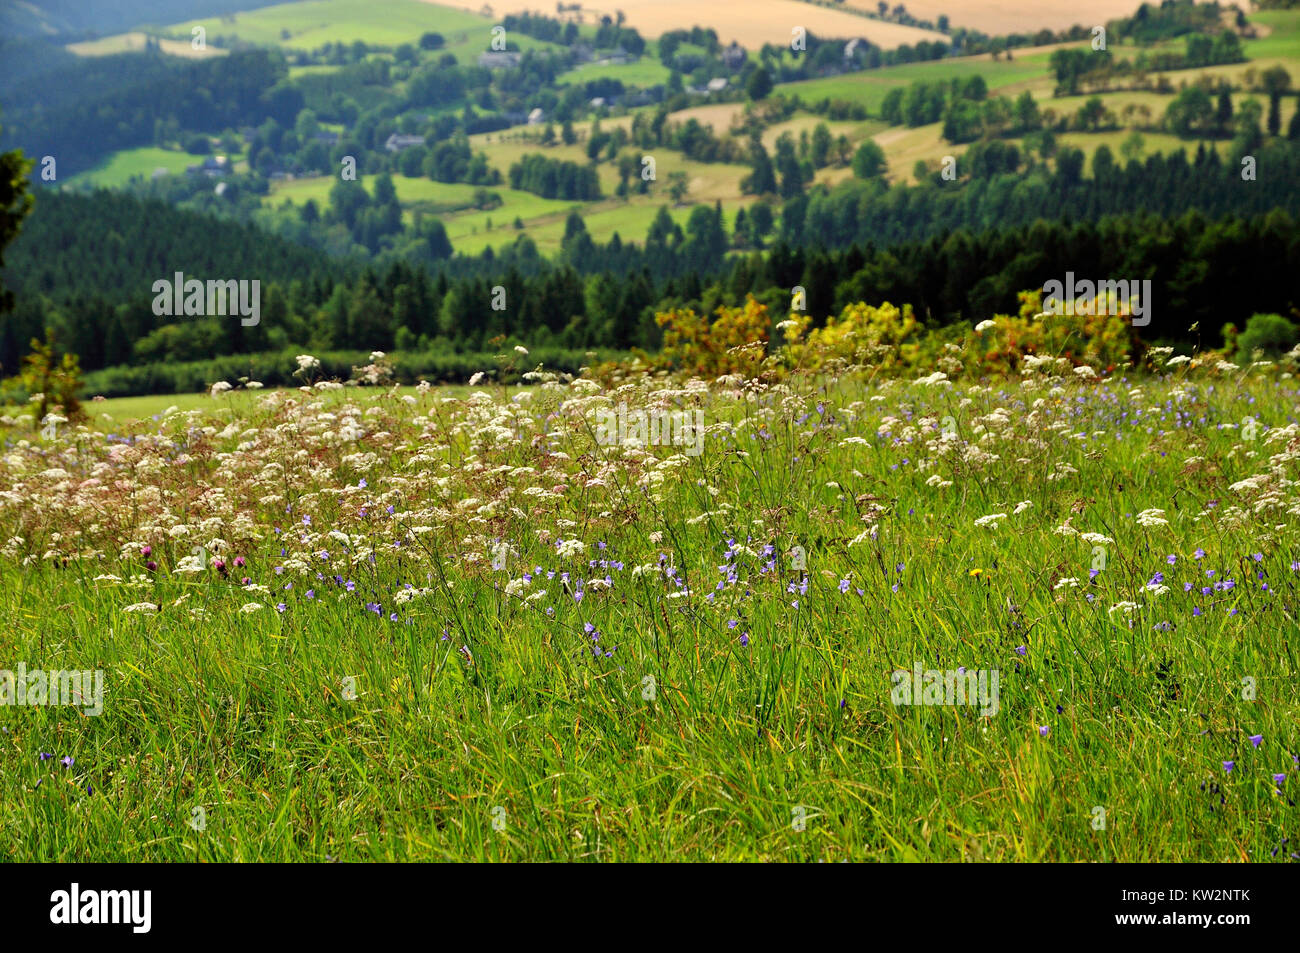 Arch mountain meadow with Seyde, Osterzgebirge, Erzgebirgswiese bei Seyde - Stock Image